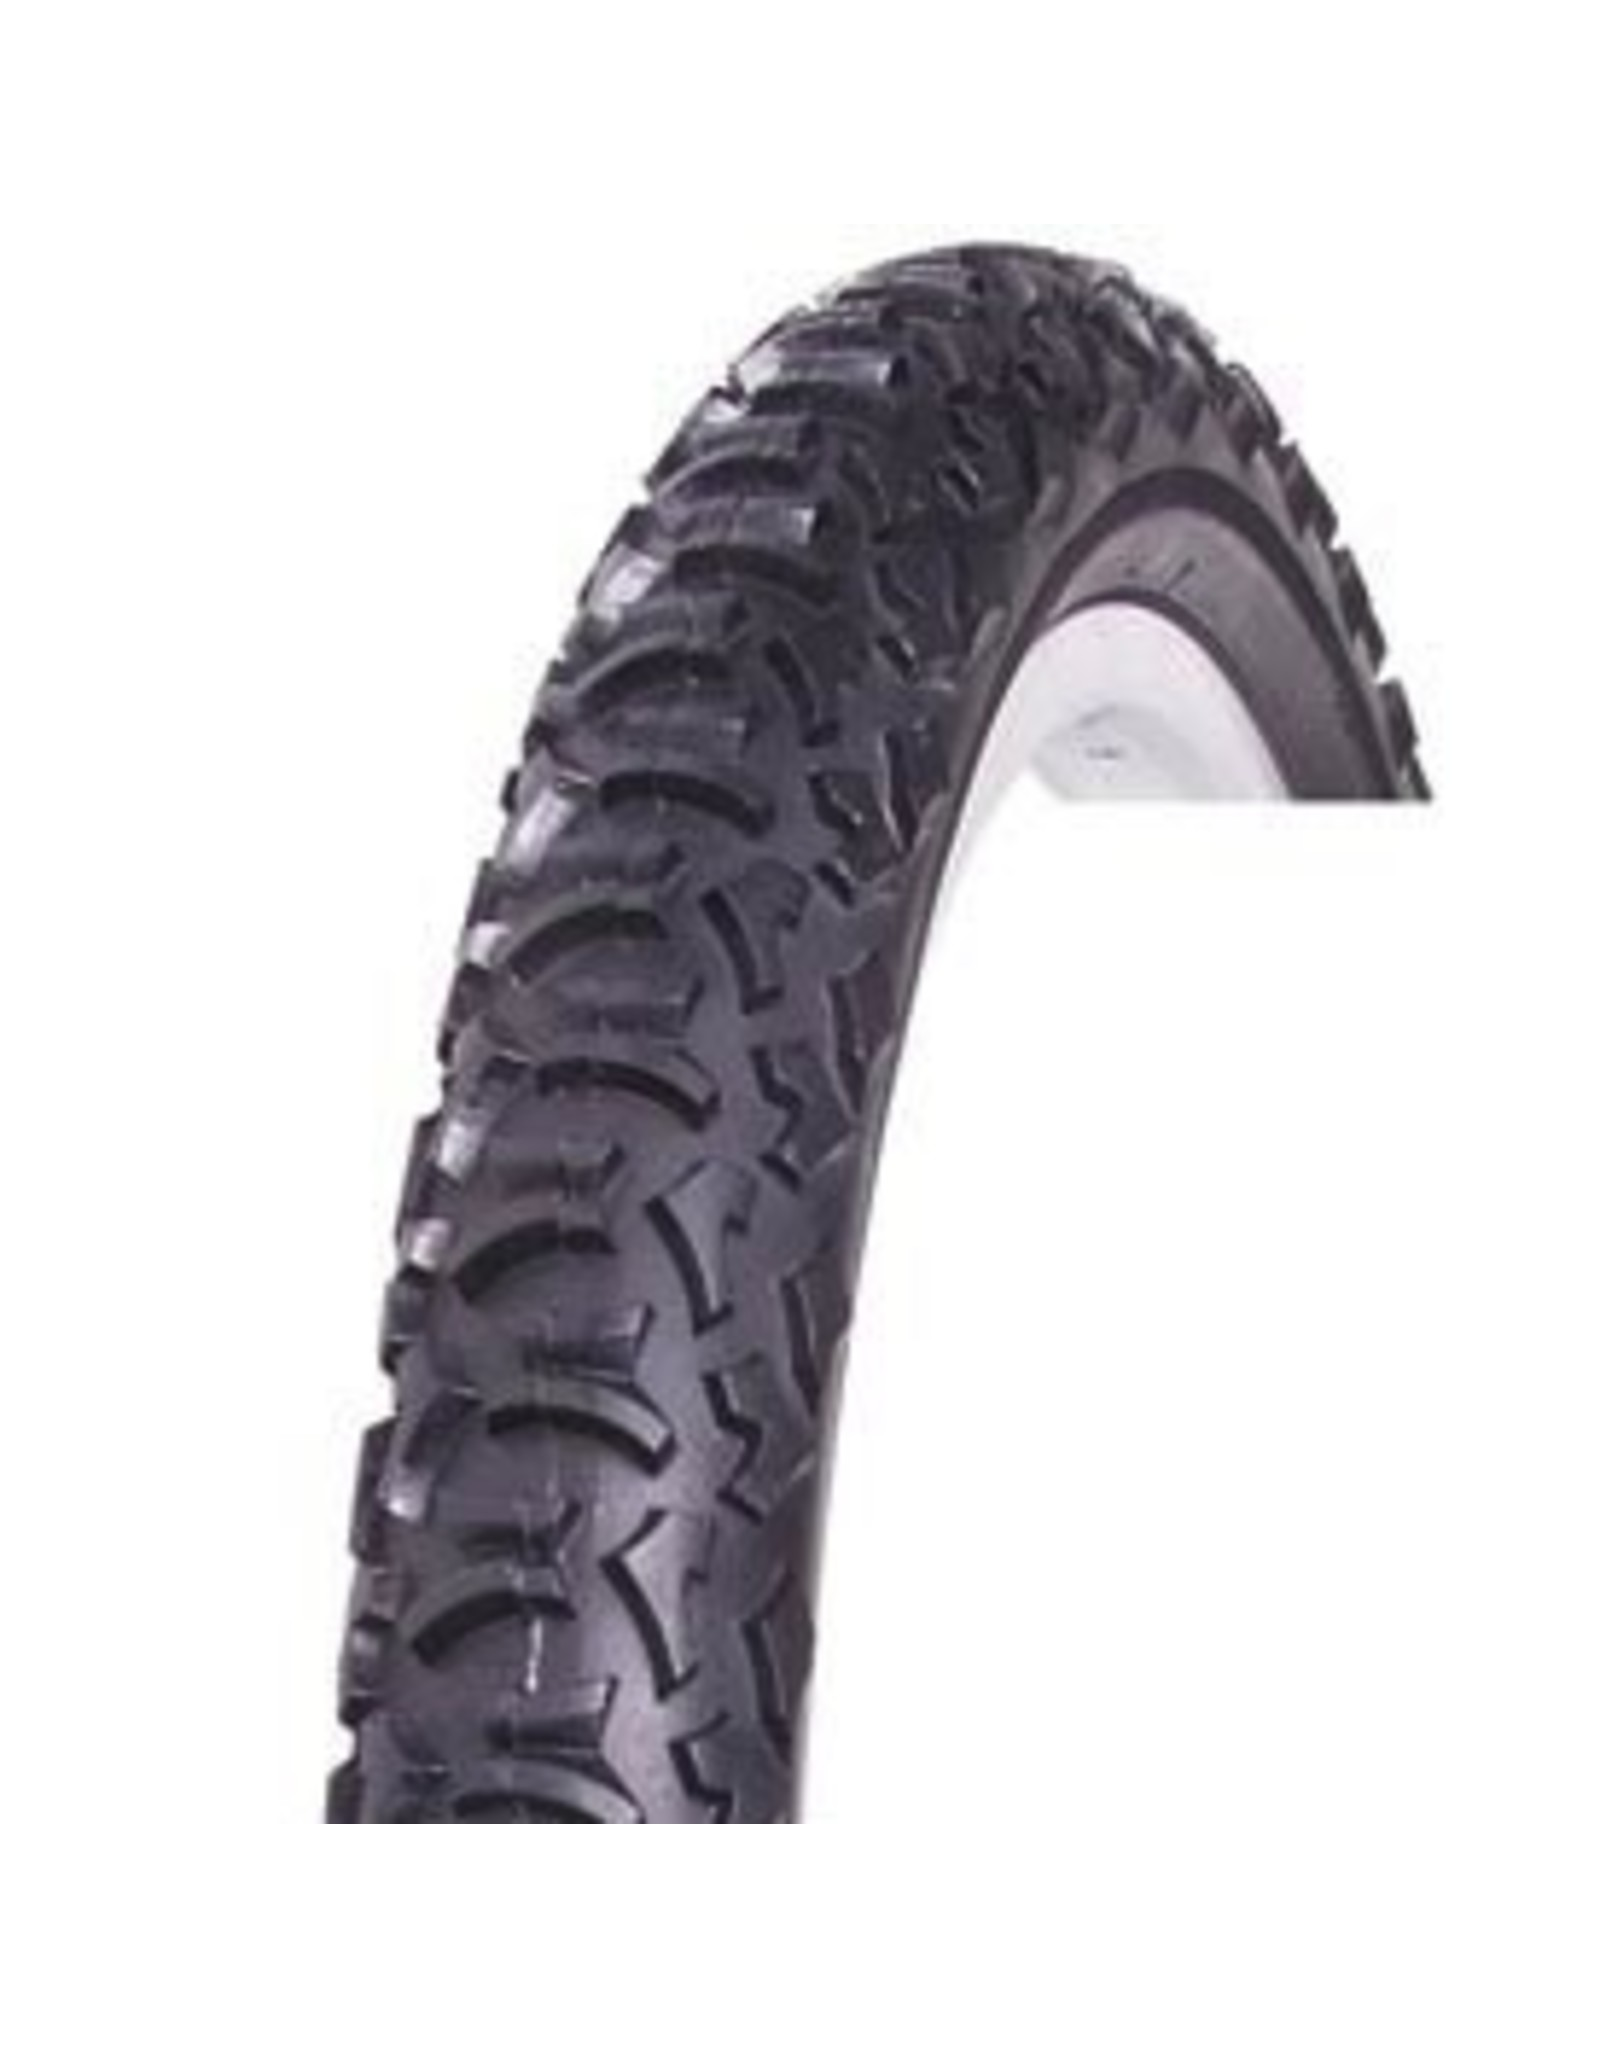 VEE RUBBER Vee Rubber Tire - Black - 12 1/2 x 2 1/4